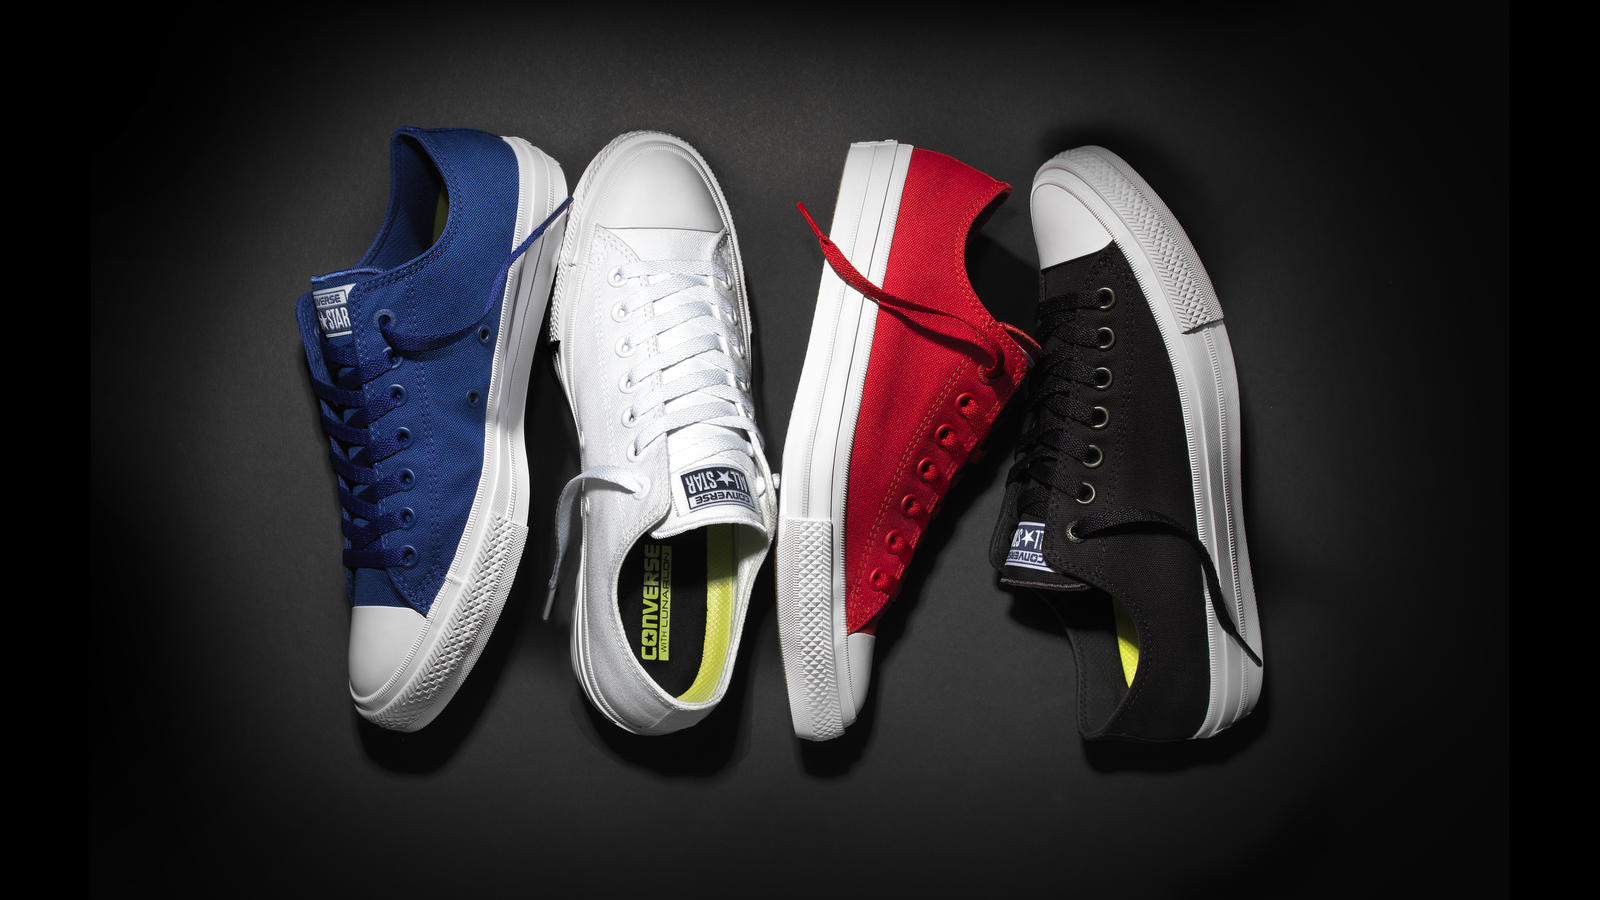 252f787c263c CONVERSE USHERS IN NEW ERA WITH GROUND-BREAKING CHUCK TAYLOR ALL ...